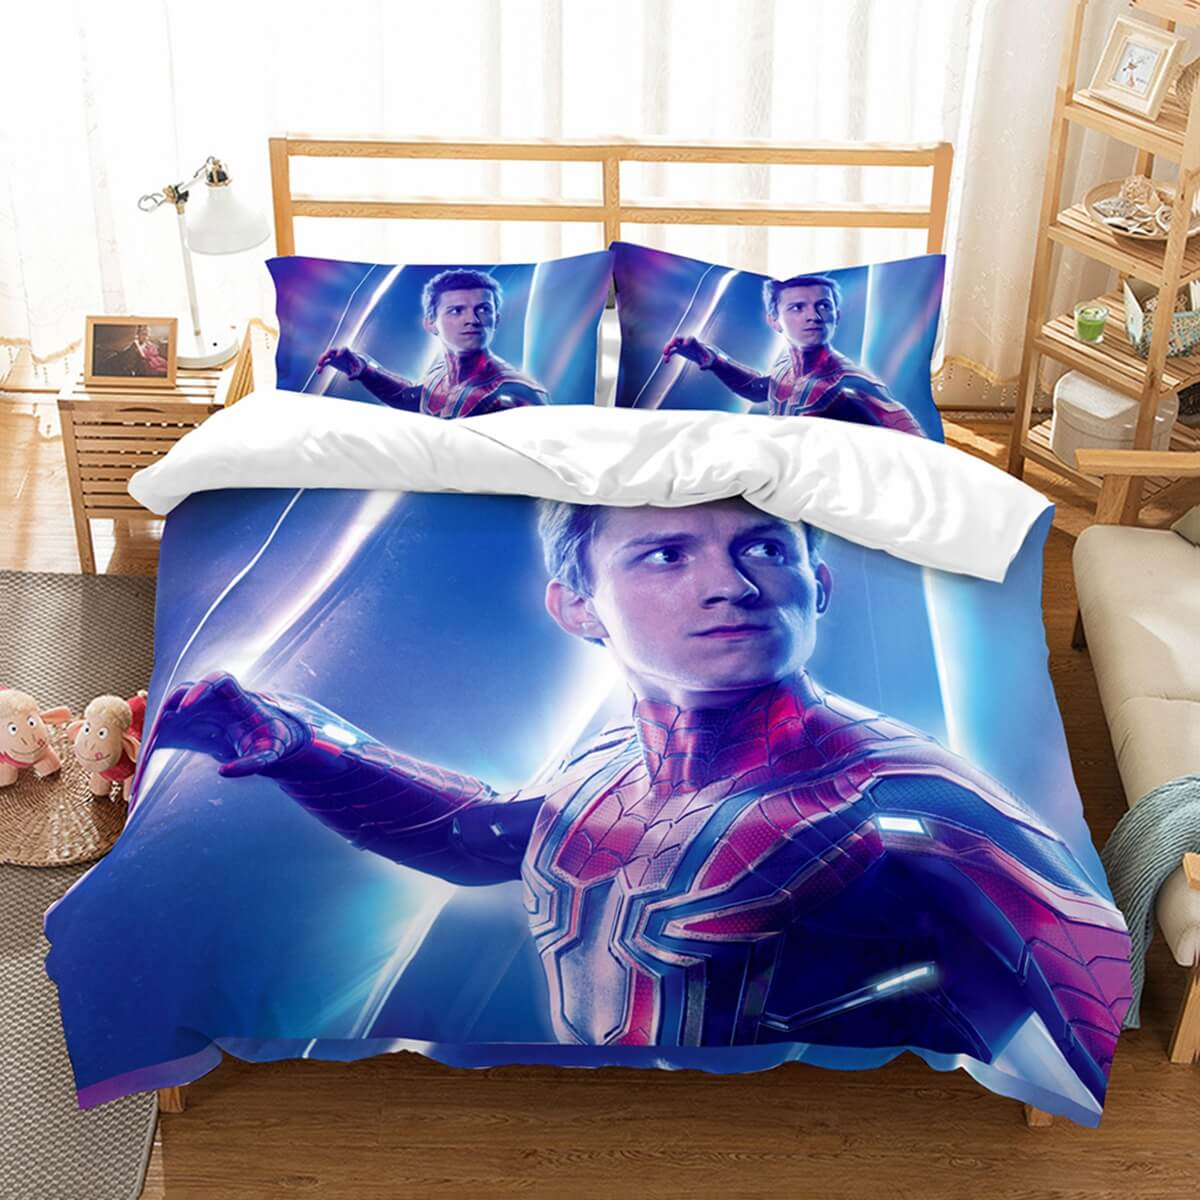 3D Customize Avengers Infinity War Spider Man Bedding Set Duvet Cover Set Bedroom Set Bedlinen